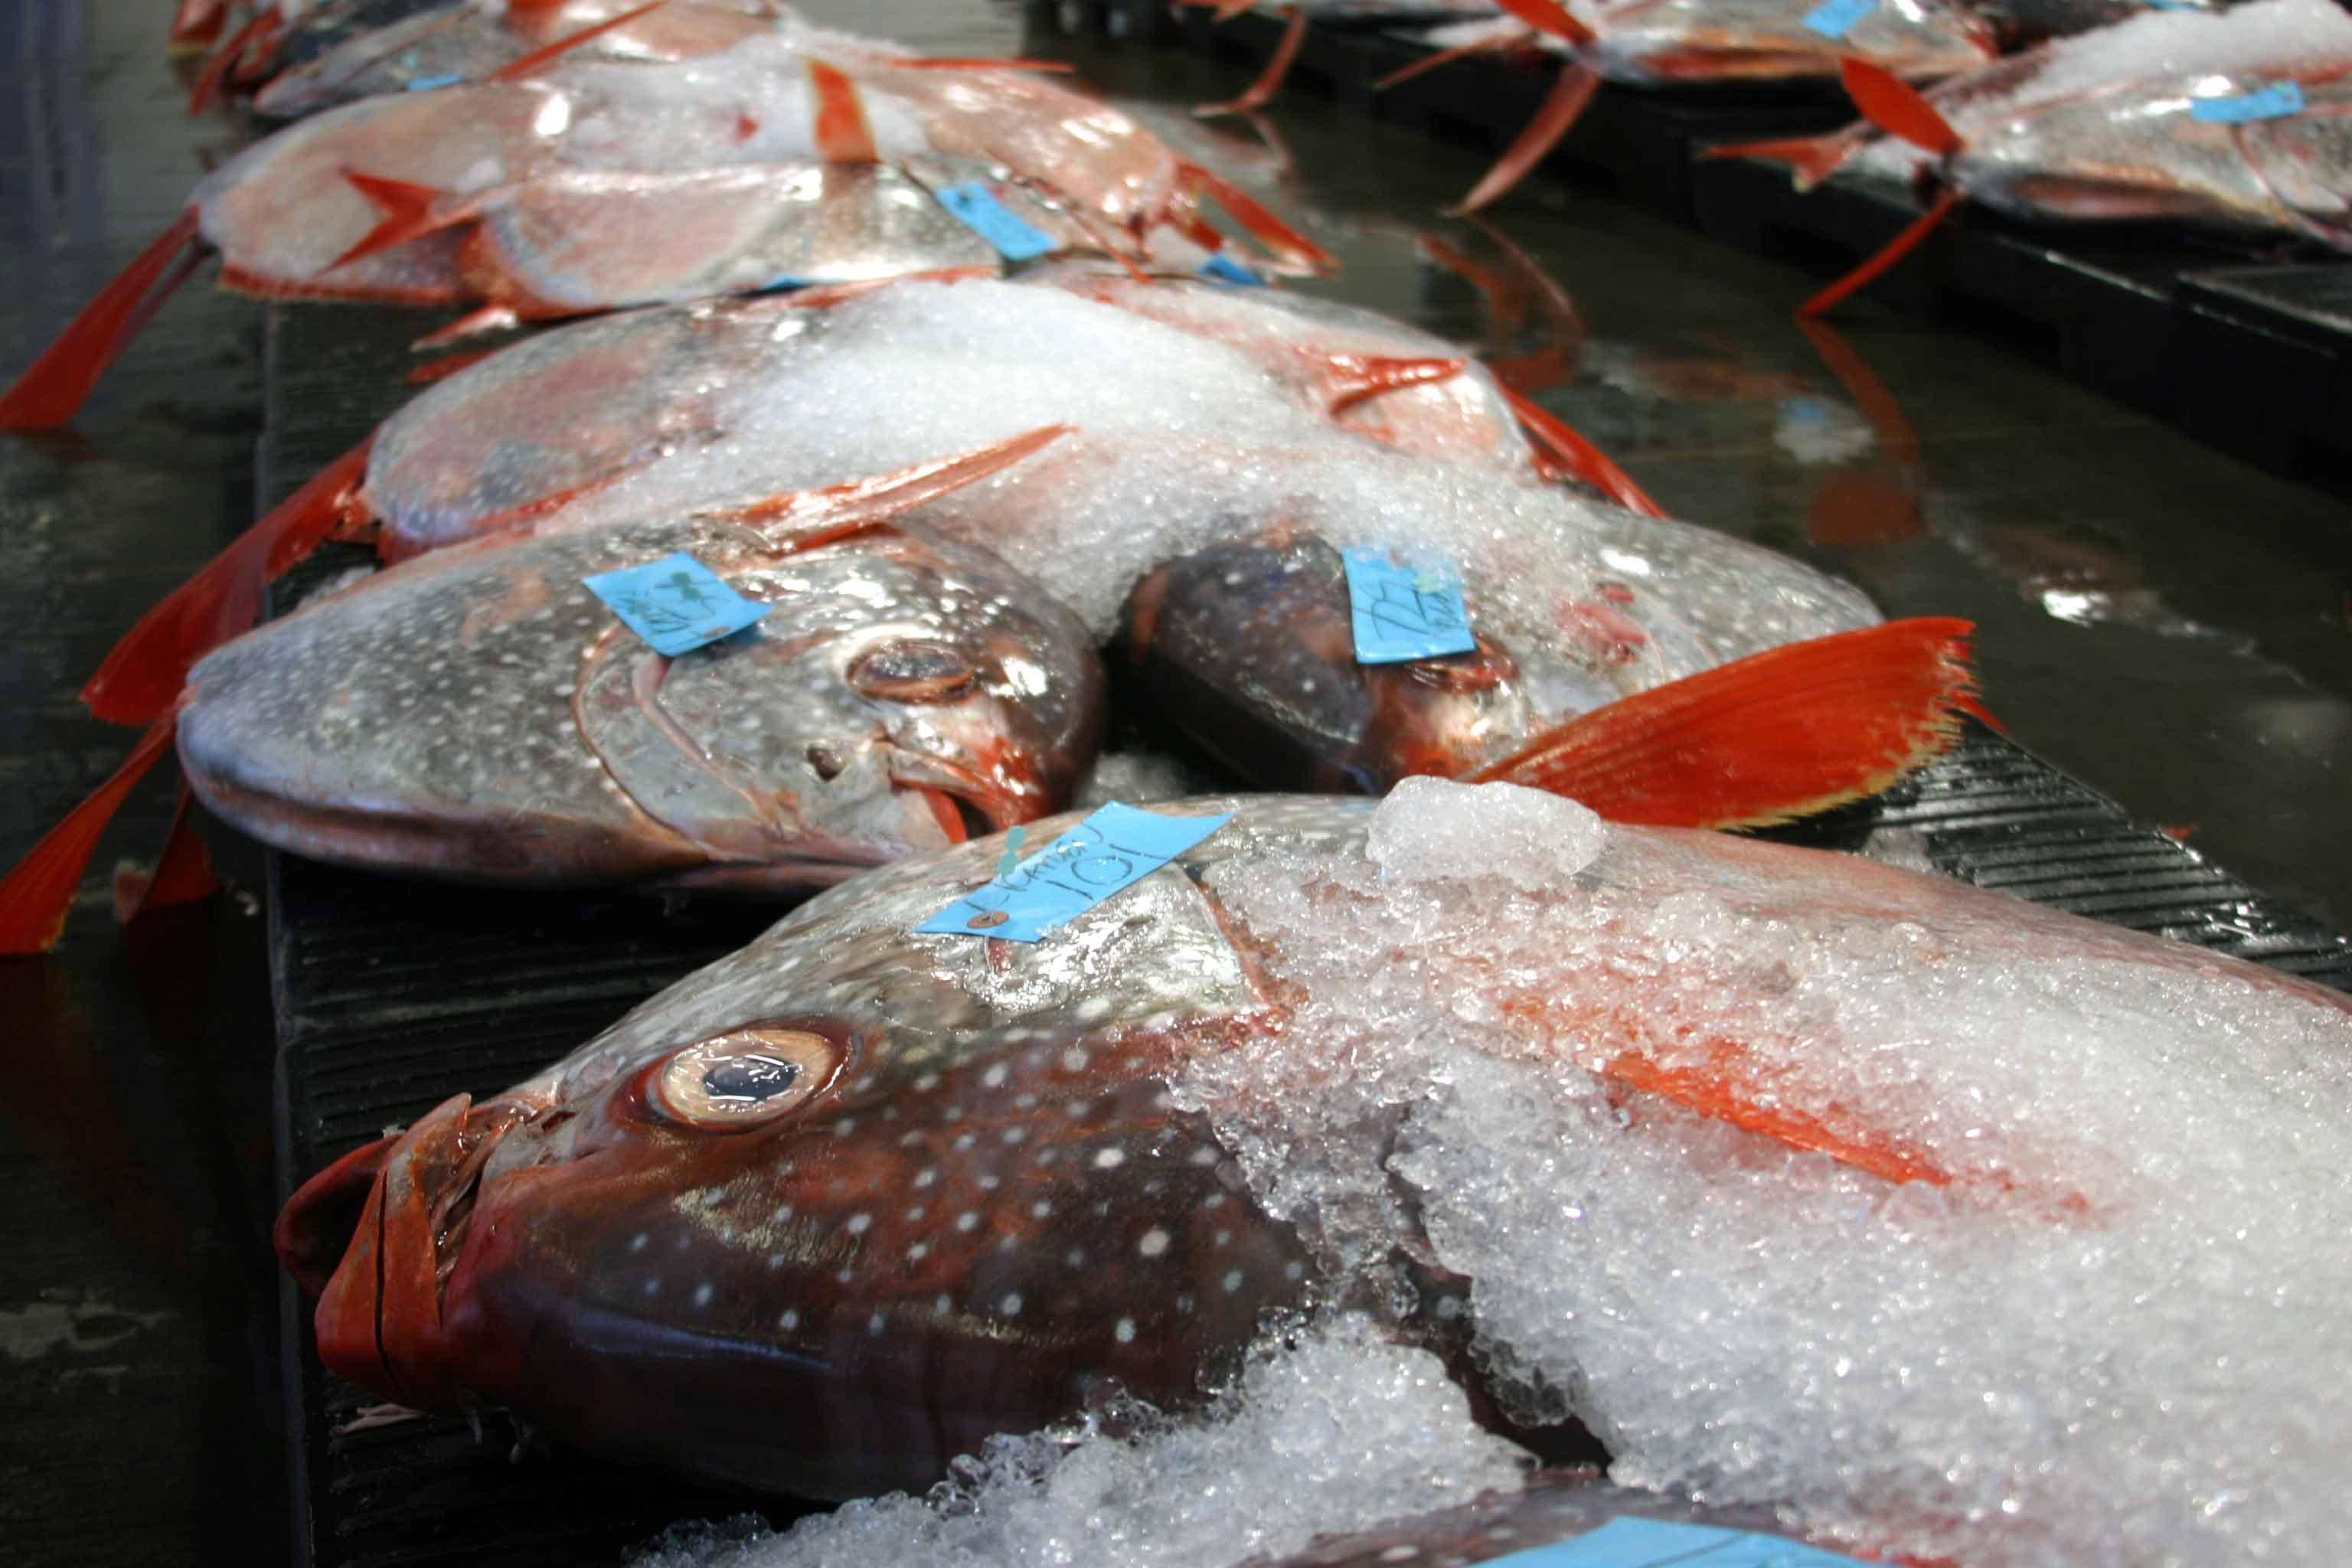 M noa ocean fish acquire more mercury at depth research for How much mercury is in fish